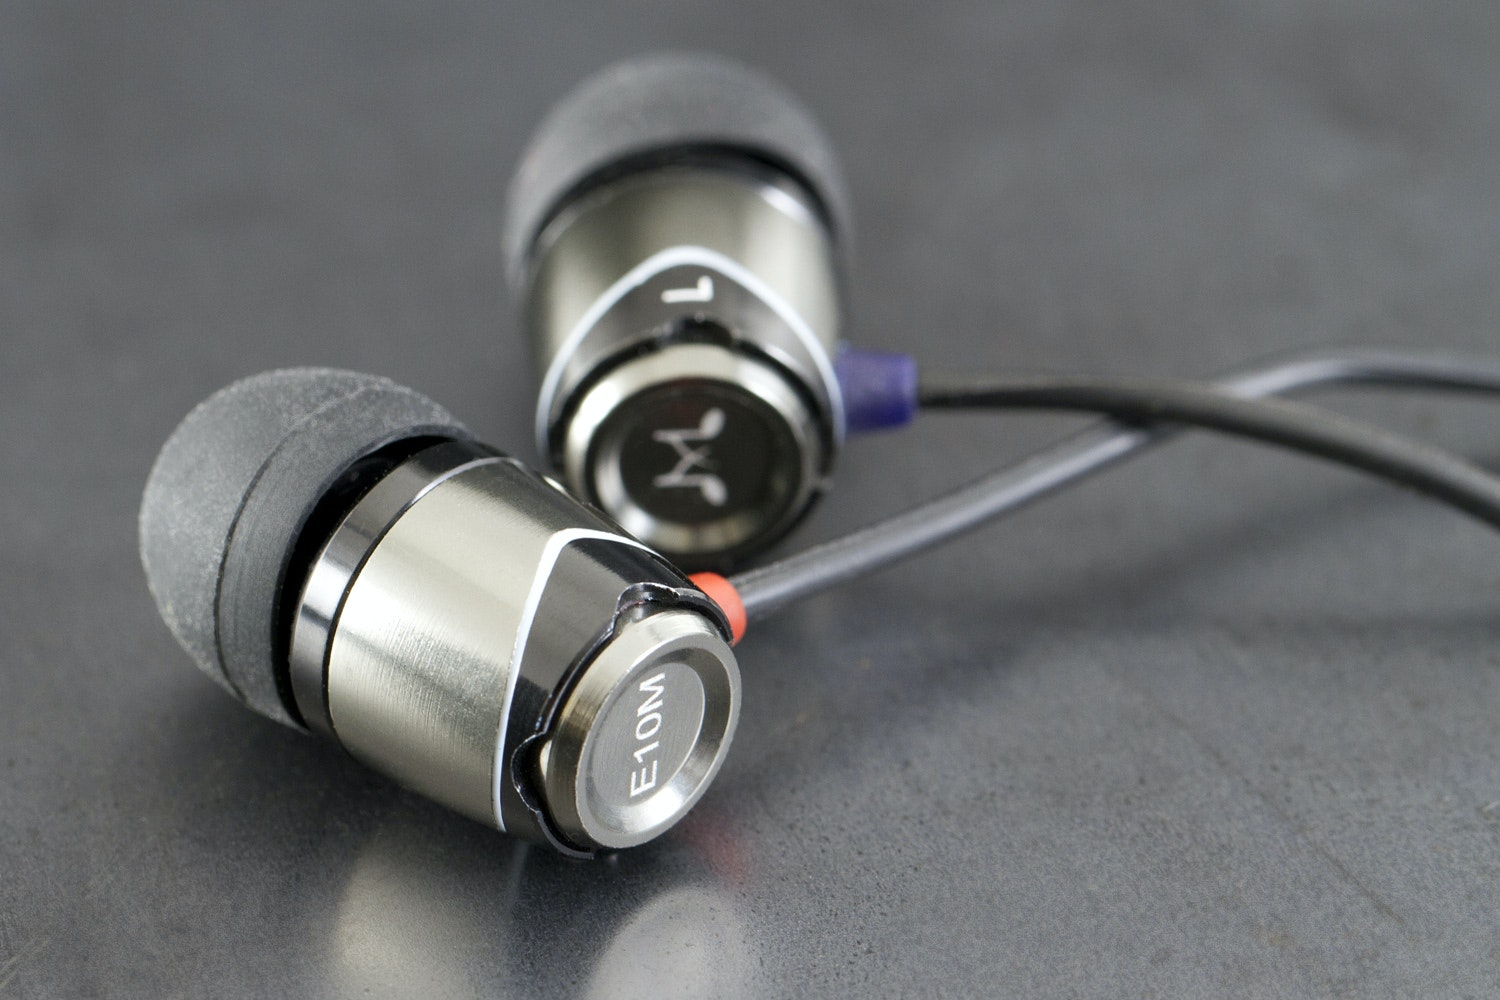 SoundMAGIC E10 In-Ear Headphones